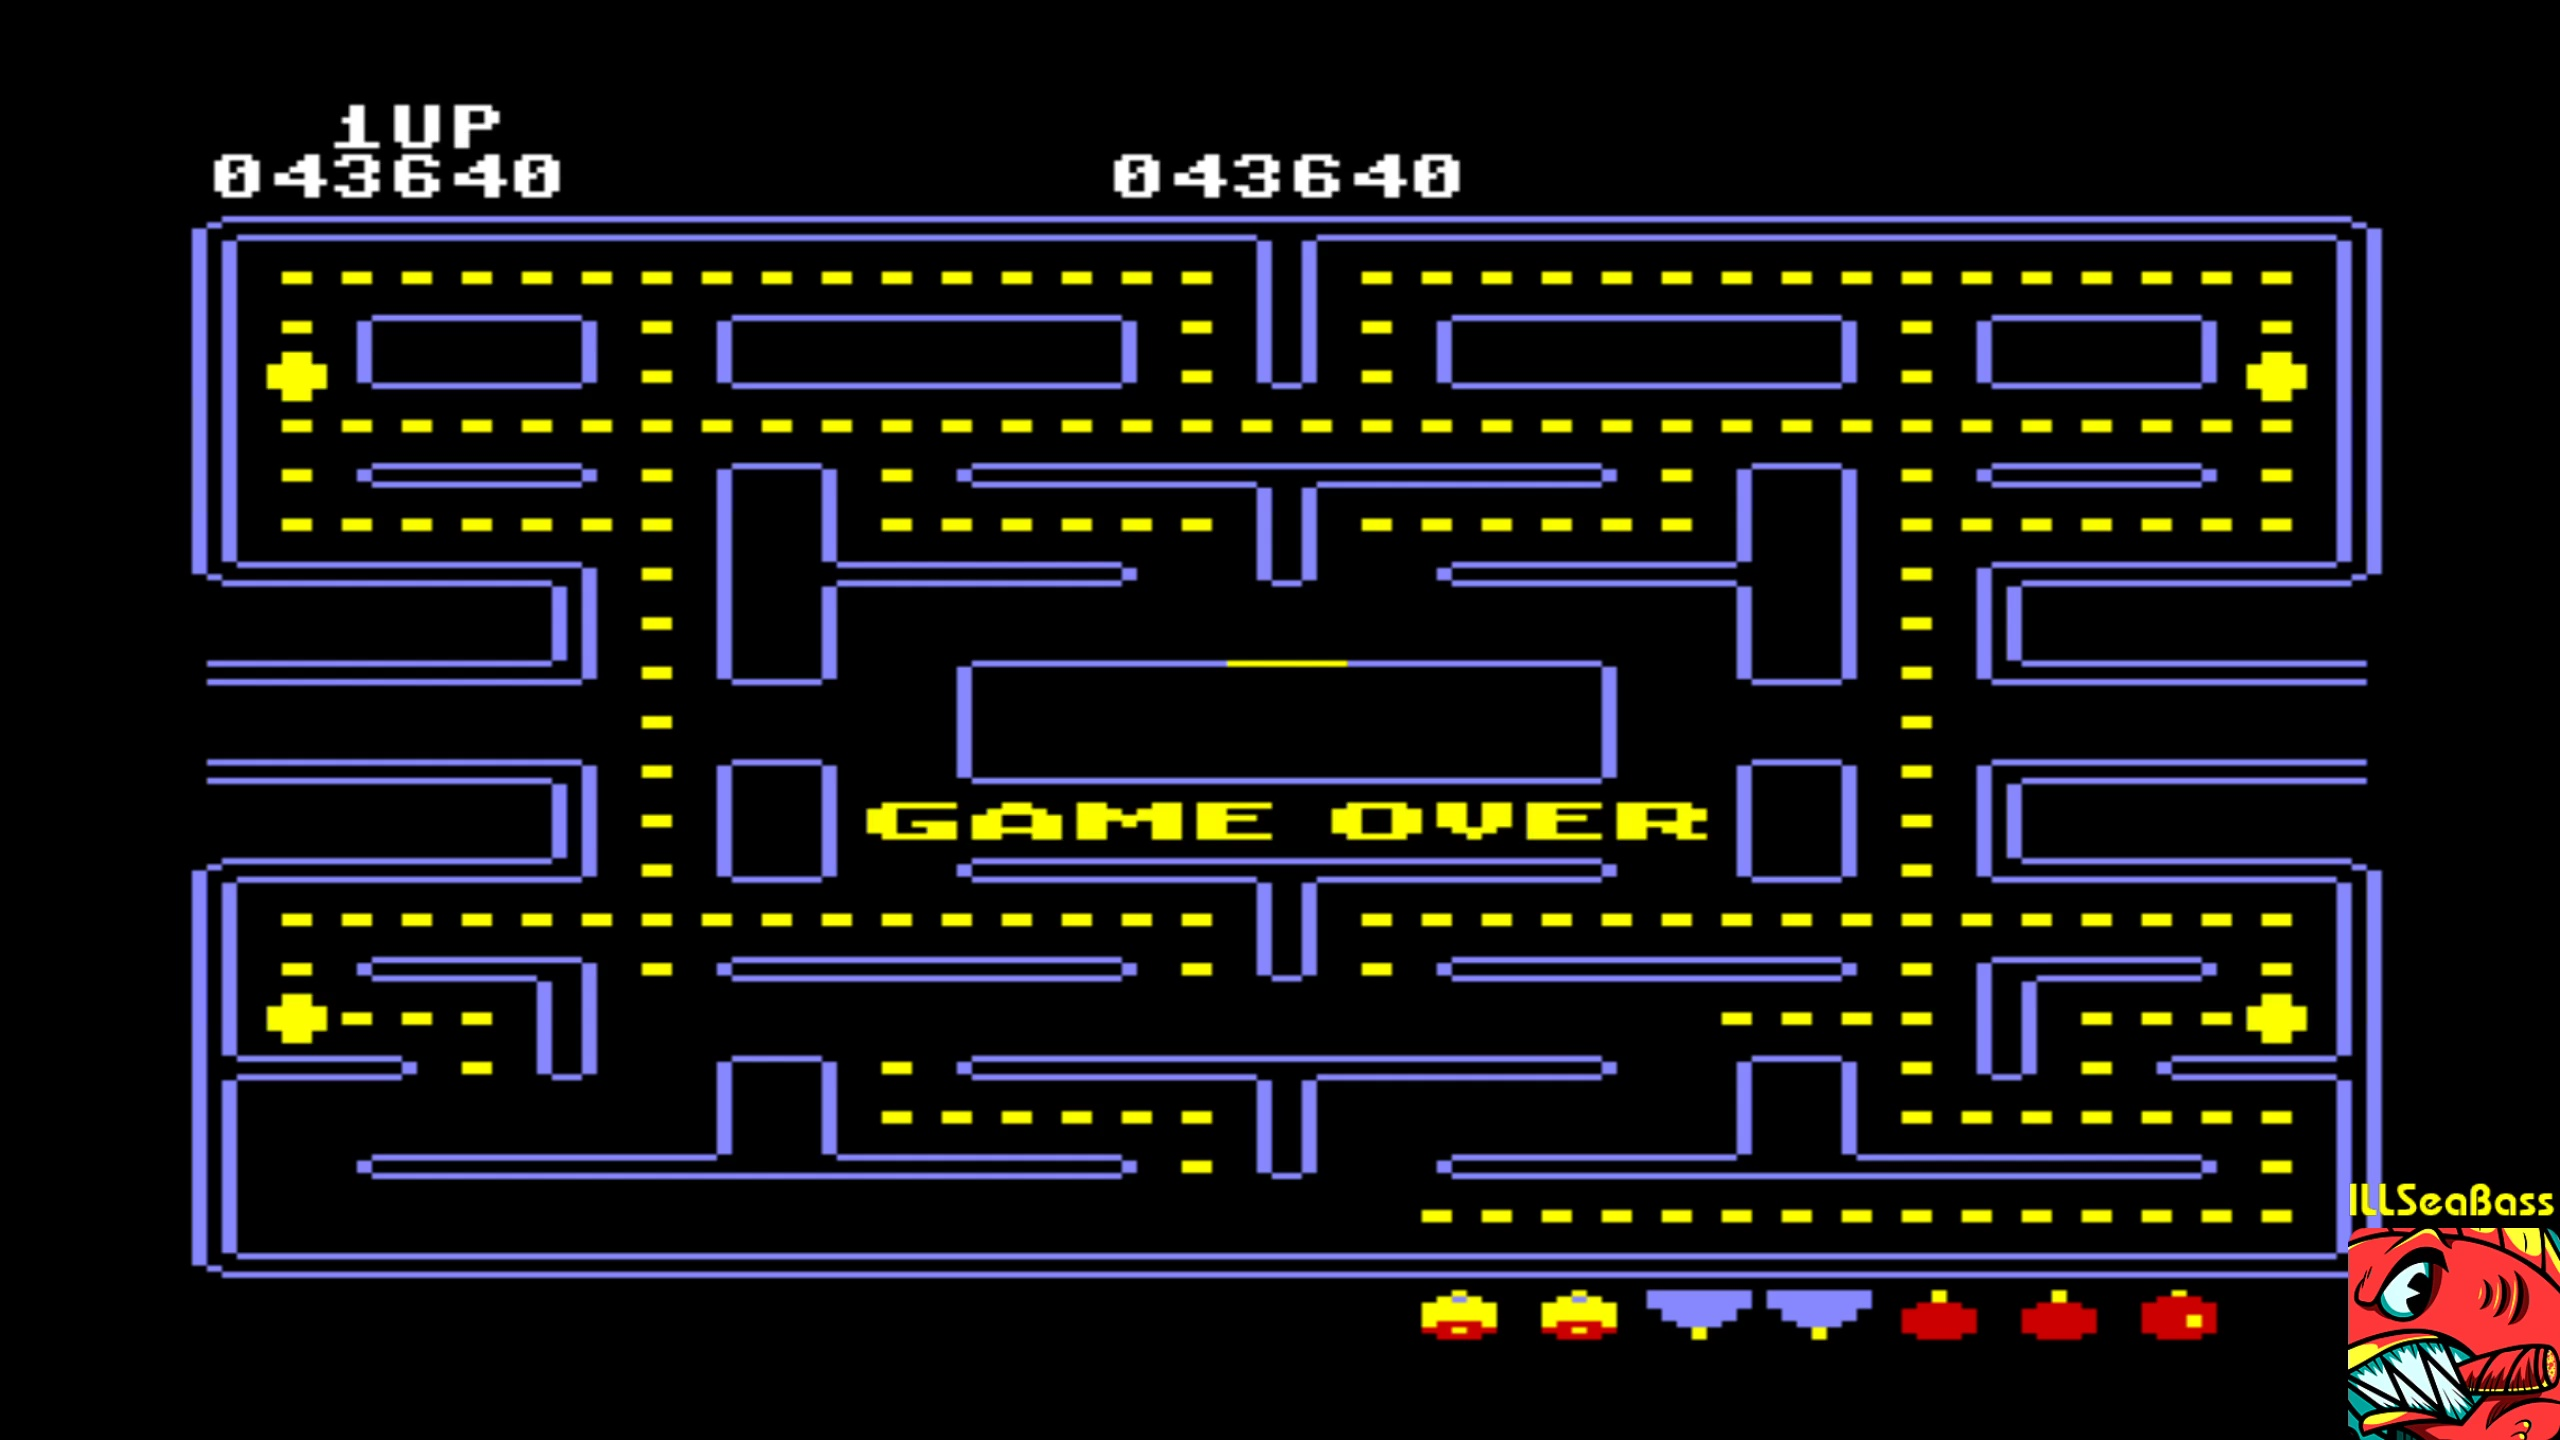 ILLSeaBass: Pac-Man [Apple start] (Commodore 64 Emulated) 43,640 points on 2018-02-12 00:35:51